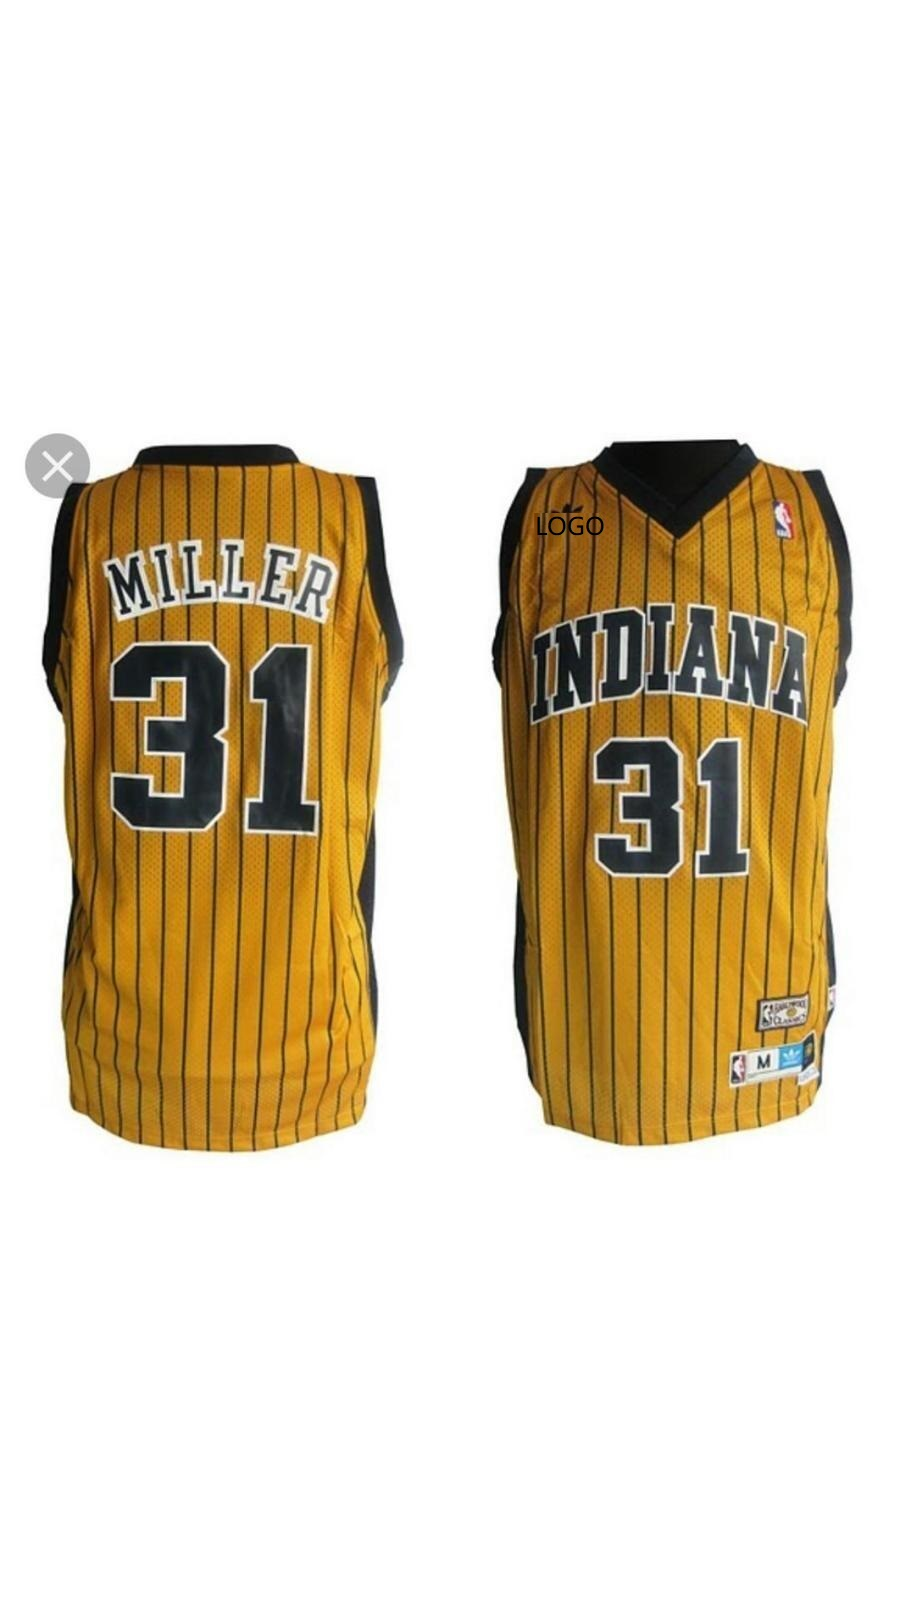 buy popular ce666 78166 2019/20 Adult INDIANA 31 MILLER basketball jersey